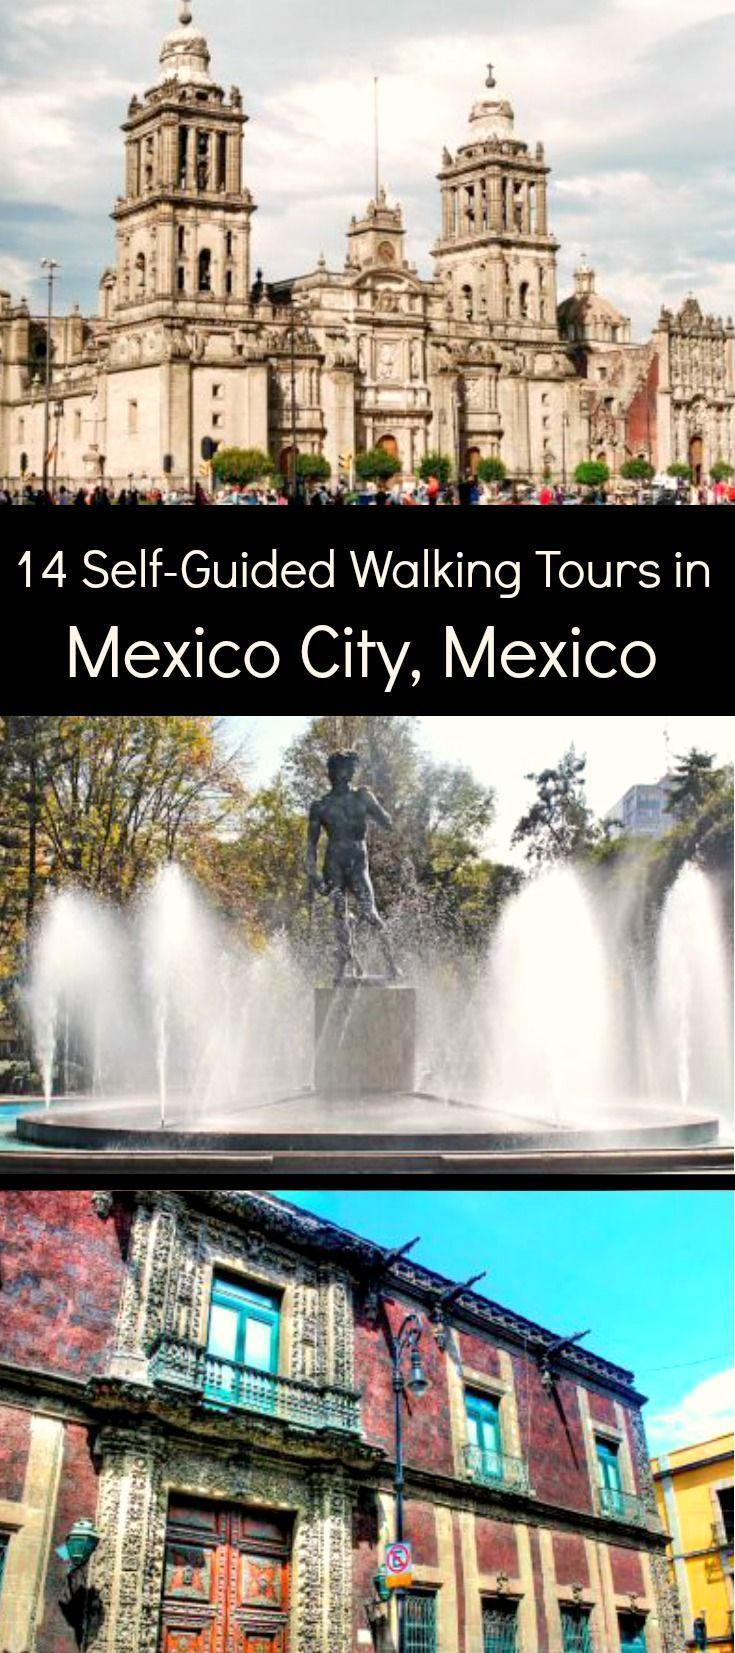 Follow these 14 expert designed self-guided walking tours to explore the city on foot at your own pace.